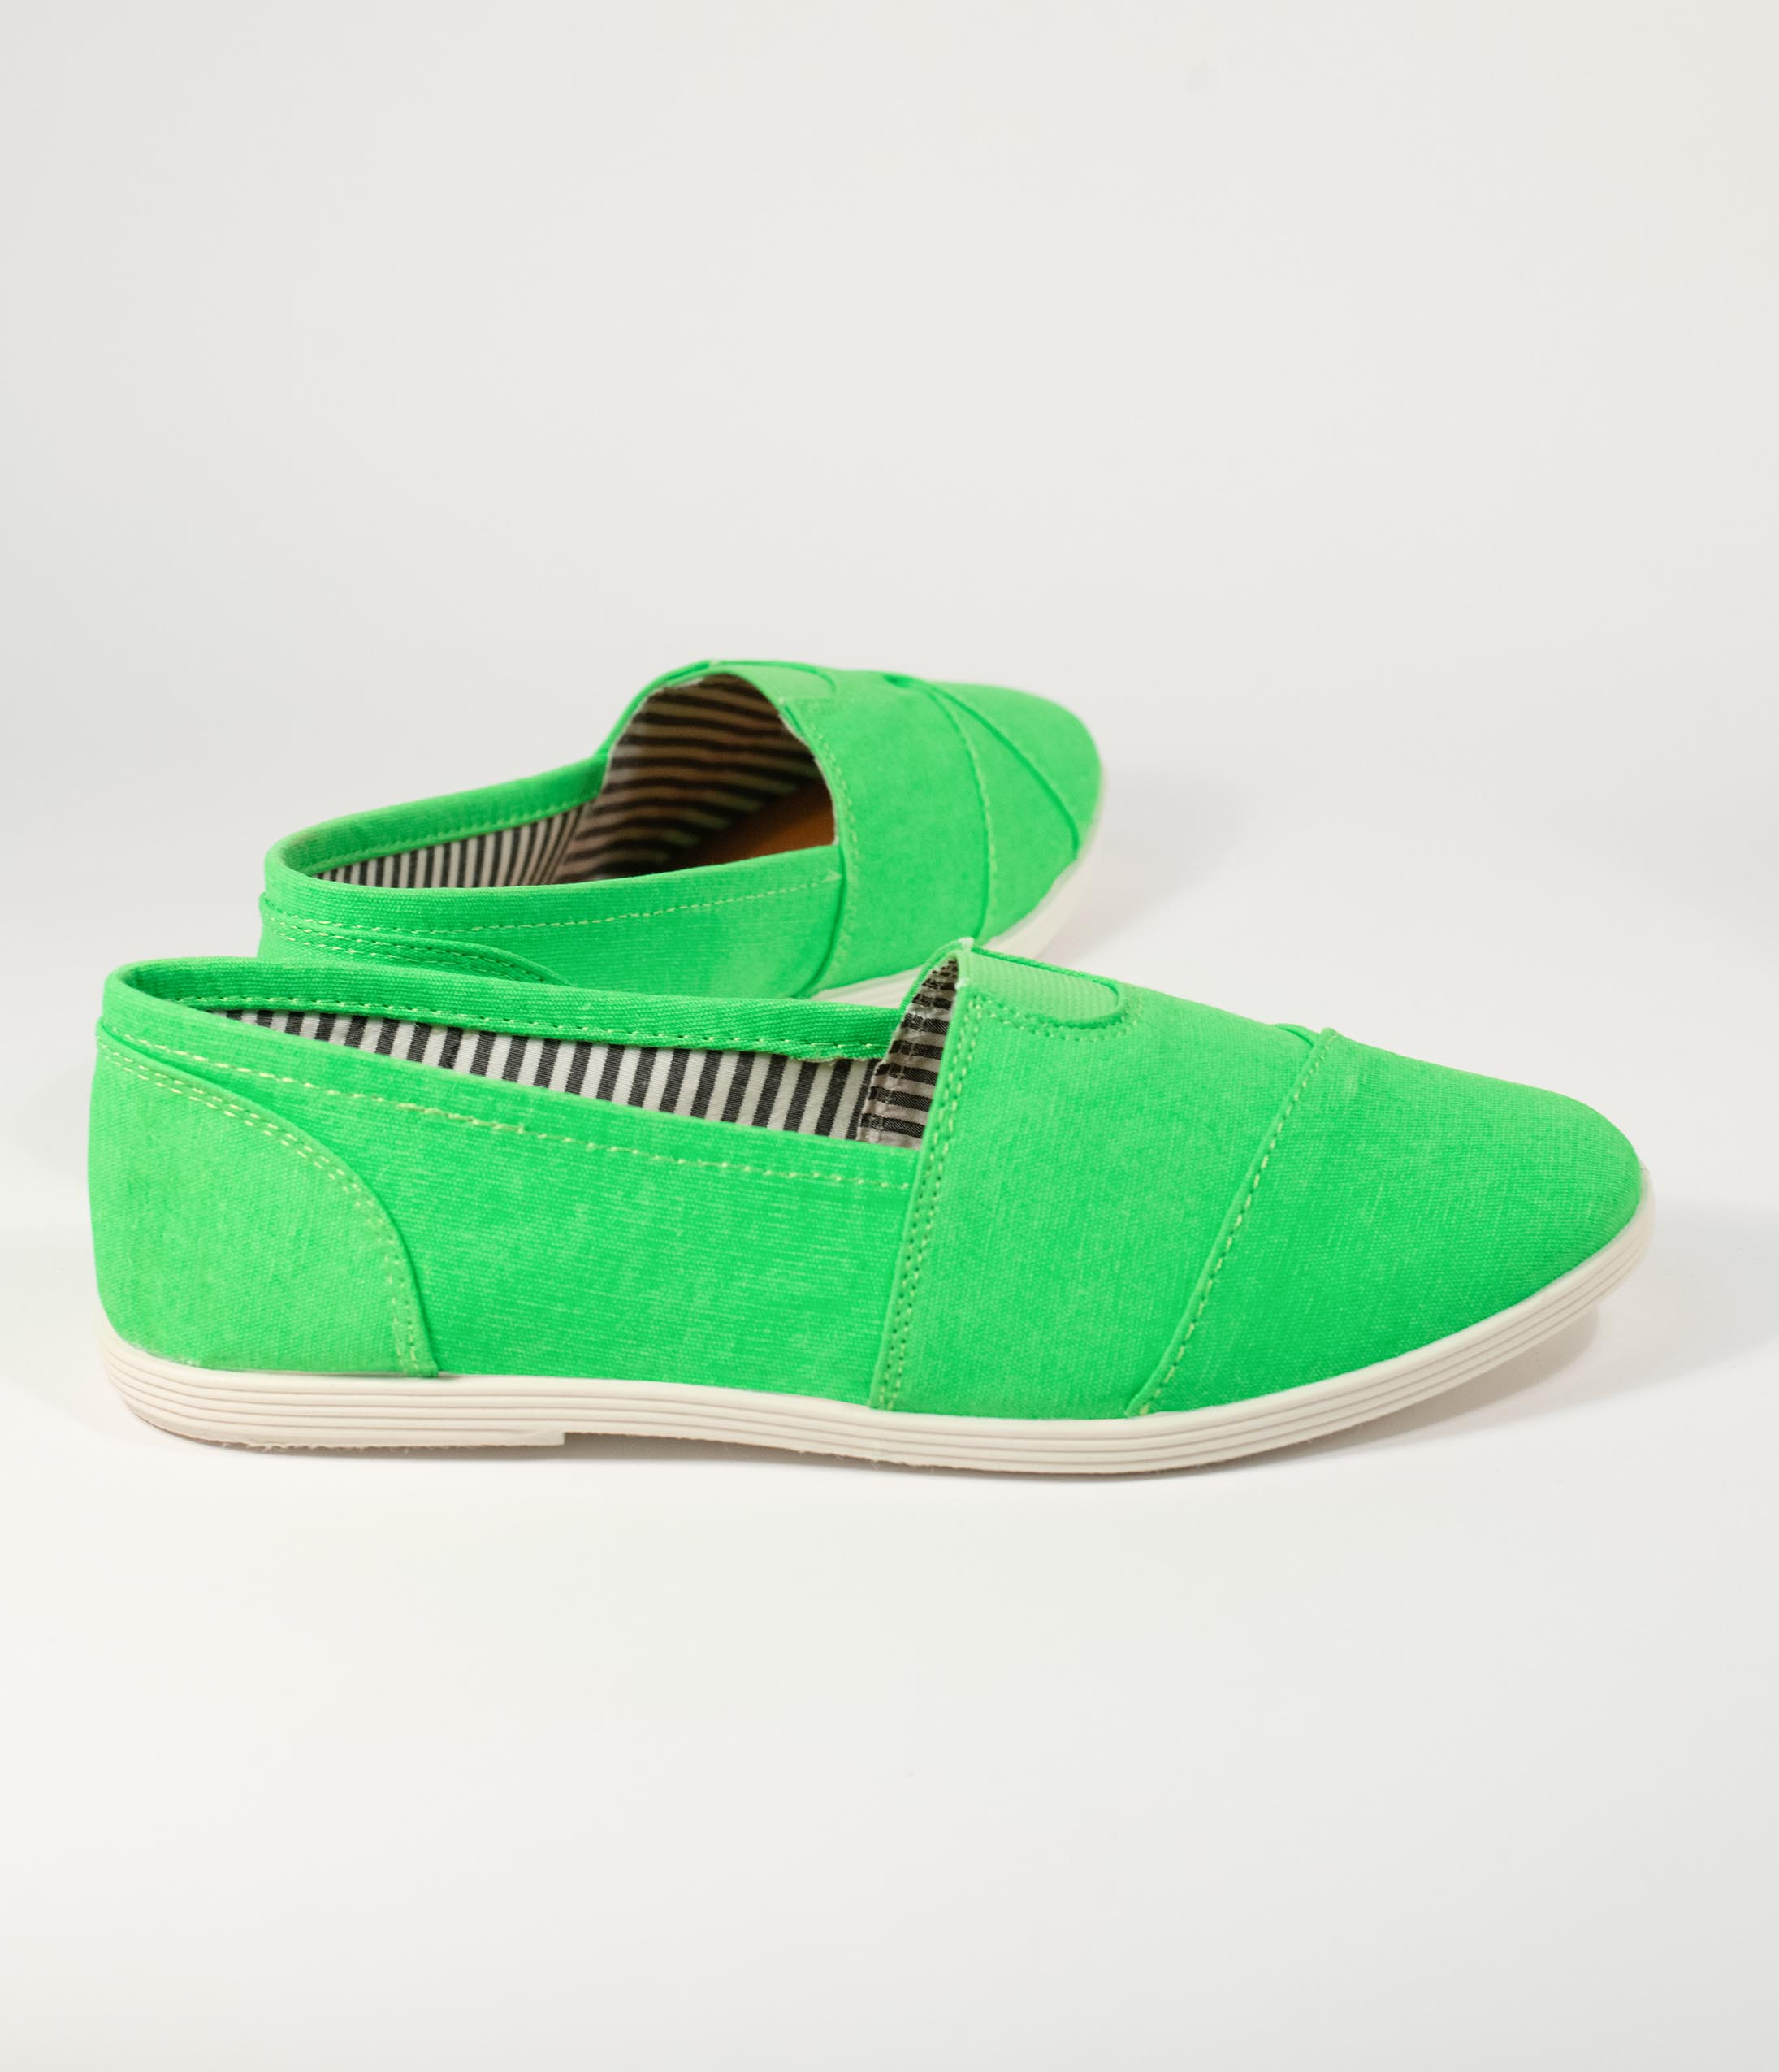 80s Shoes, Sneakers, Jelly flats Bright Green Canvas Casual Loafer Flats $32.00 AT vintagedancer.com